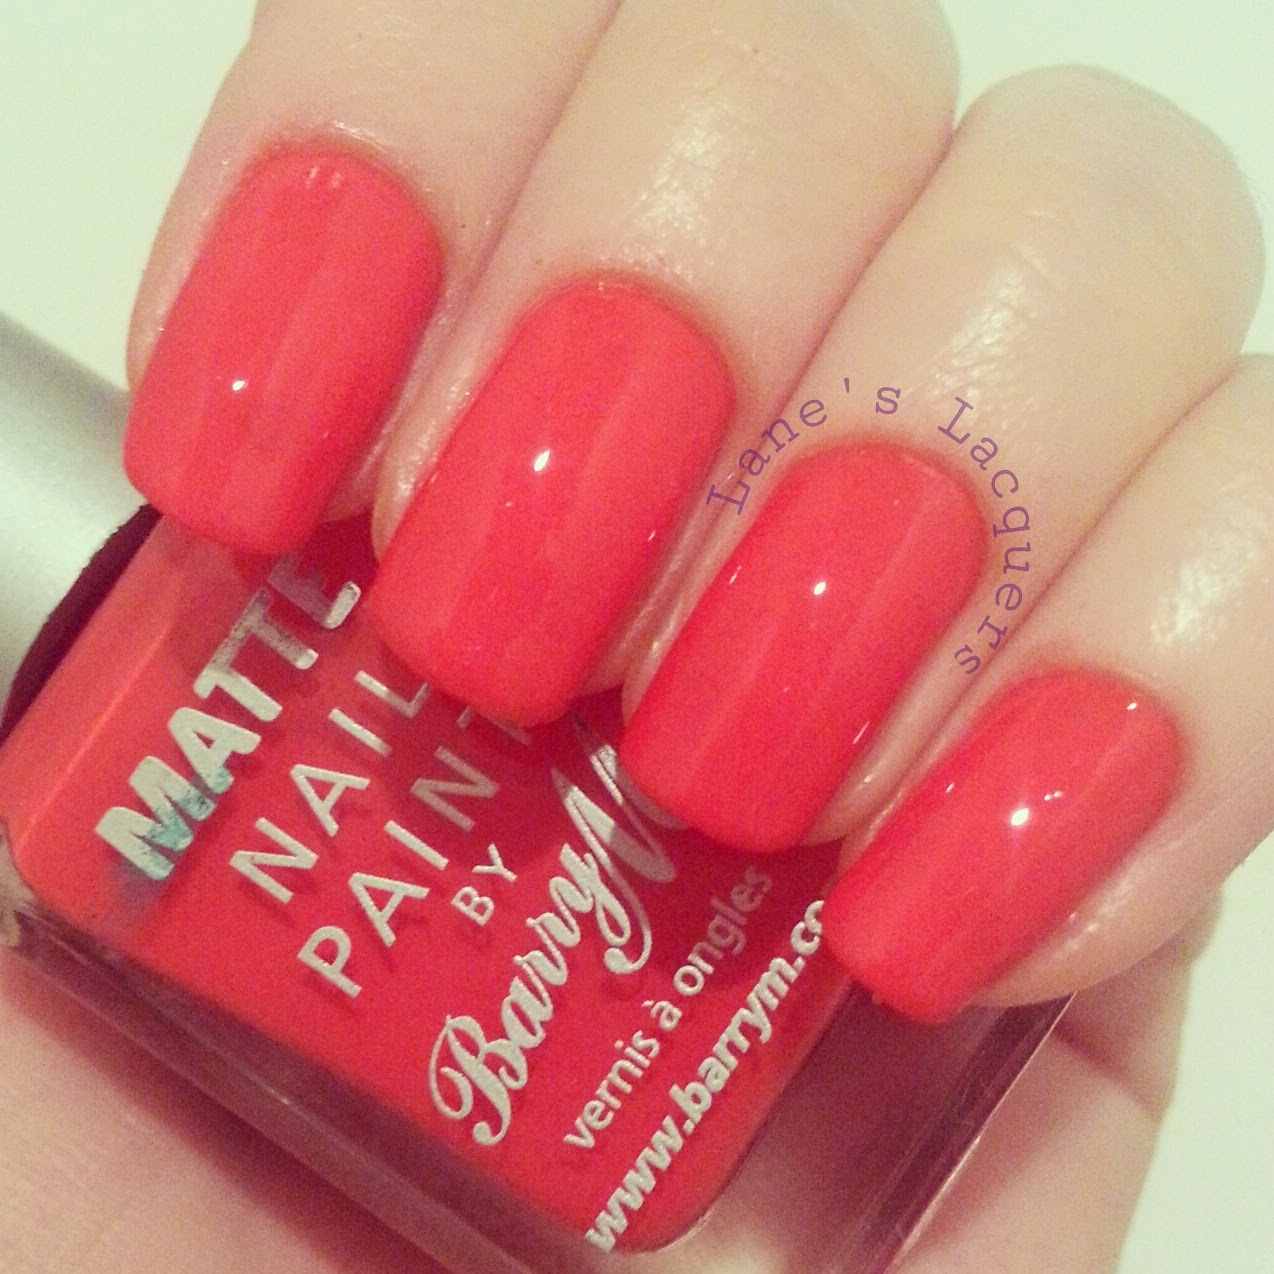 barry-m-copacabana-swatch-manicure (3)